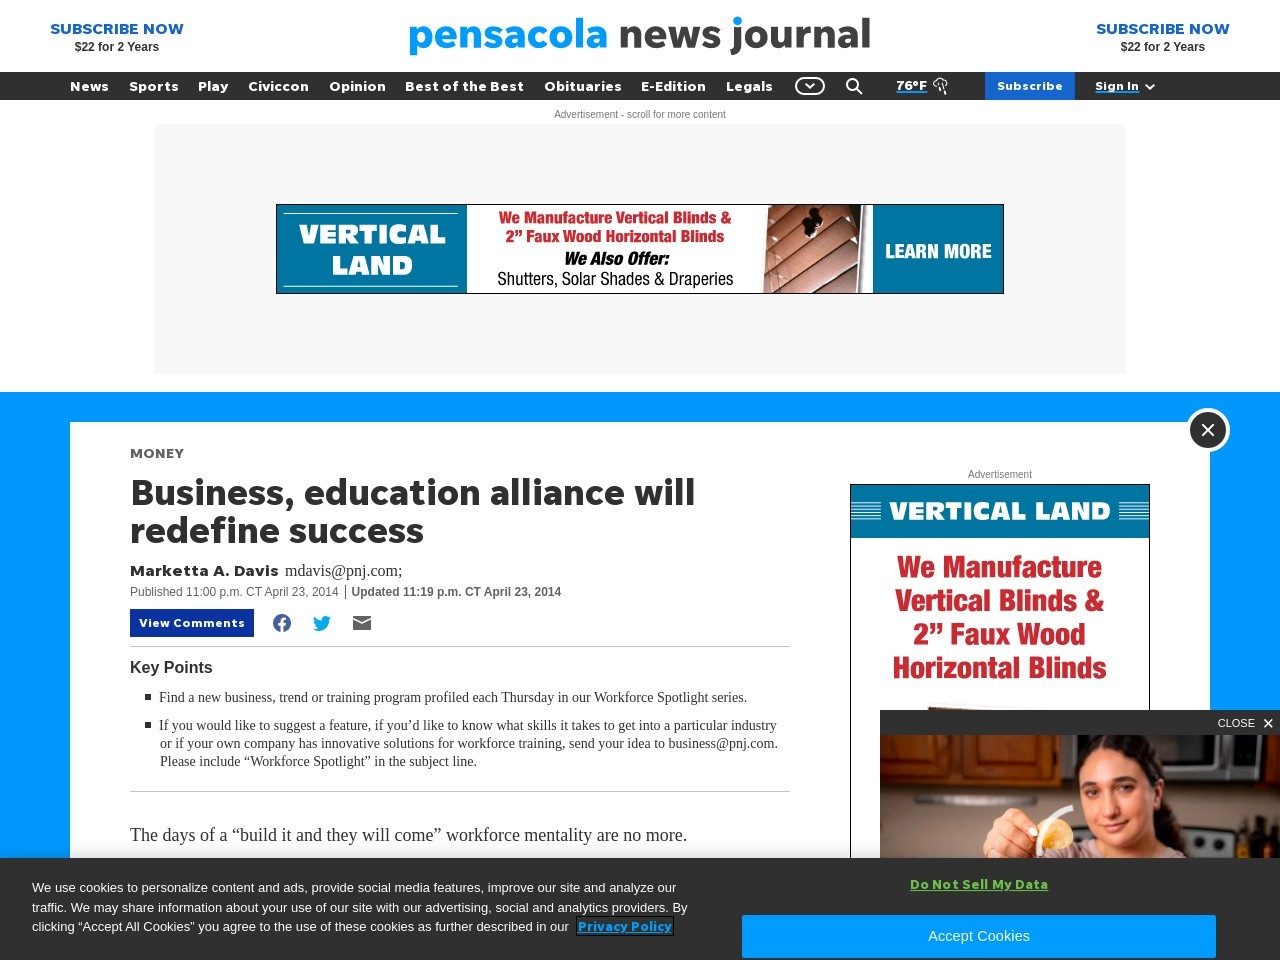 Business, education alliance will redefine success